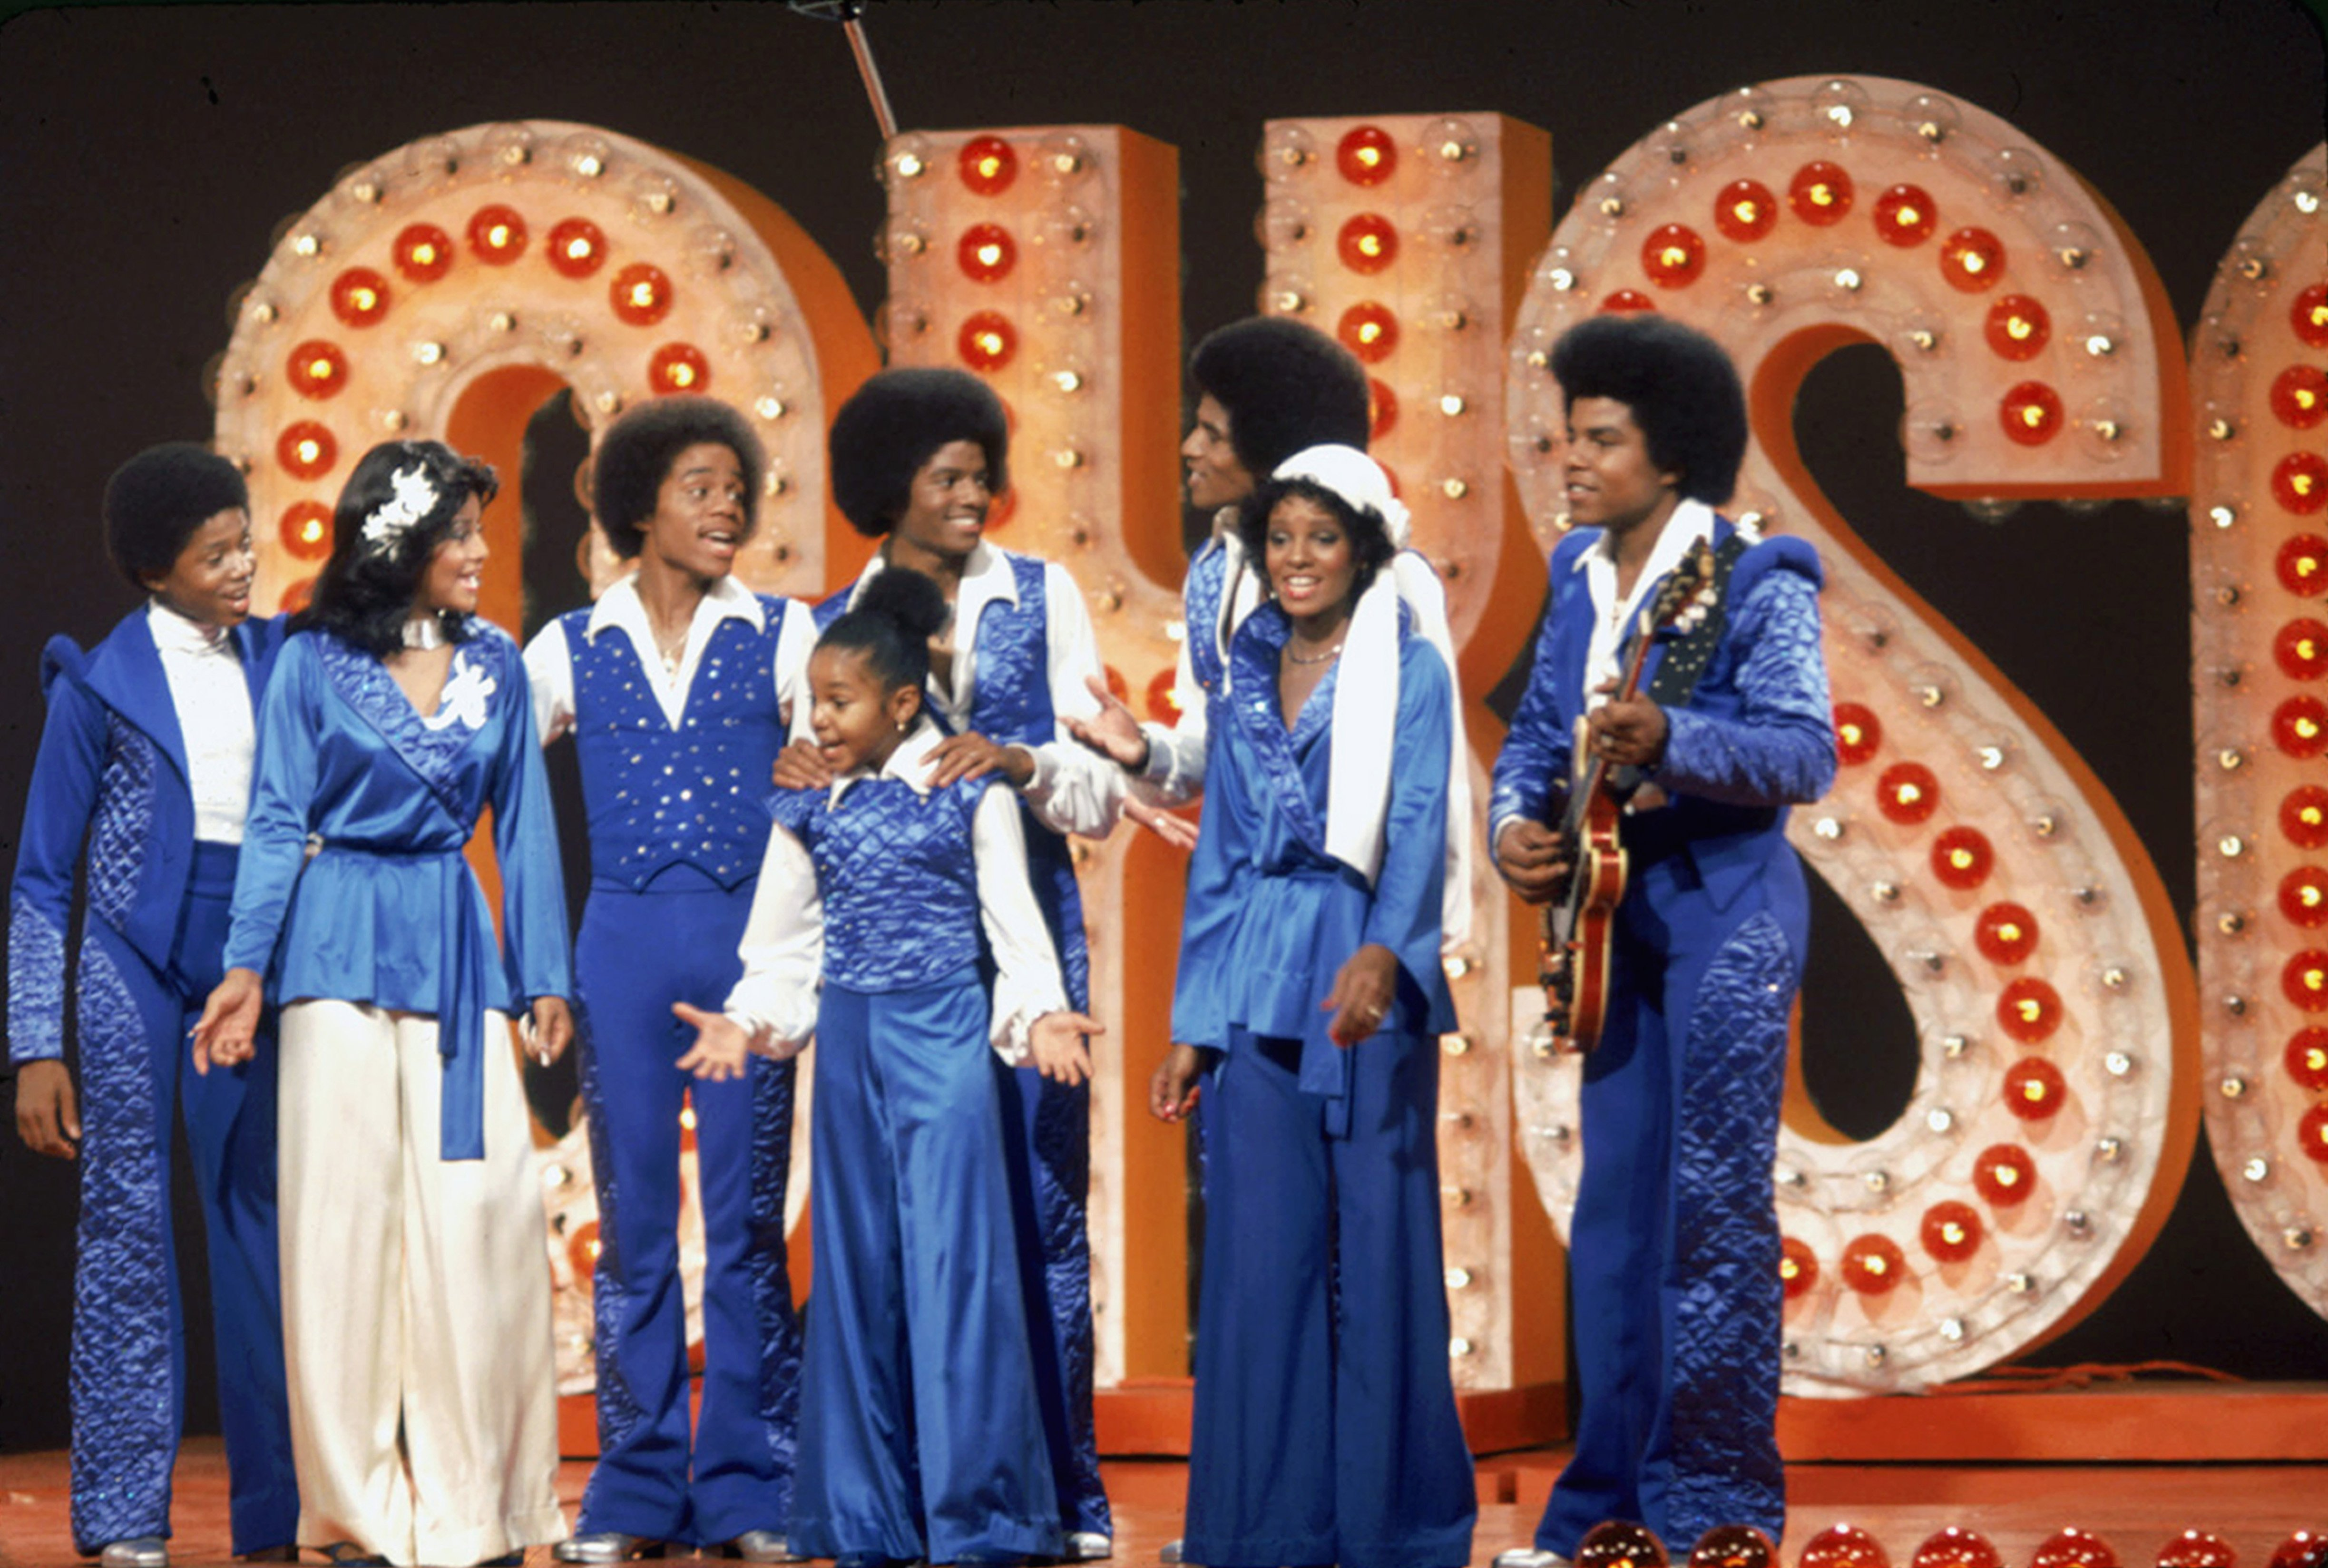 The Jackson family film a tv show at Burbank Studios, California, 13th November 1976. From left to right, Randy, La Toya, Marlon, Janet, Michael (1958 - 2009), Jackie, Rebbie and Tito | Photo: Getty Images